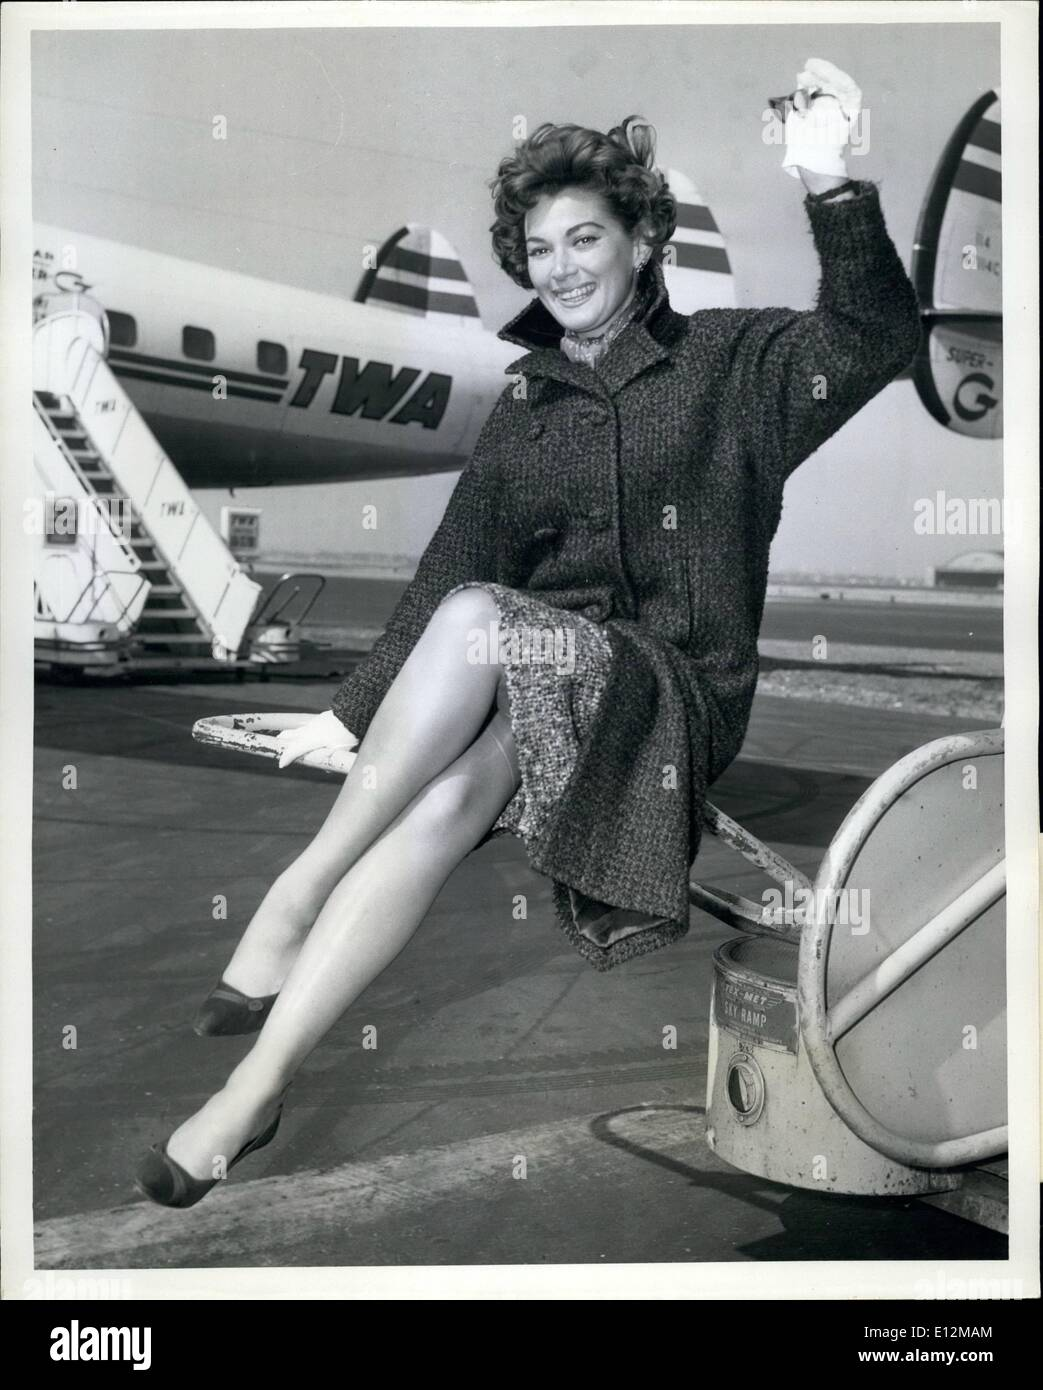 Feb. 24, 2012 - Idlewild Airport, N.Y., -- Lovely TV Actress Doris wiss saddens the heart of New Yorkers by leaving Stock Photo